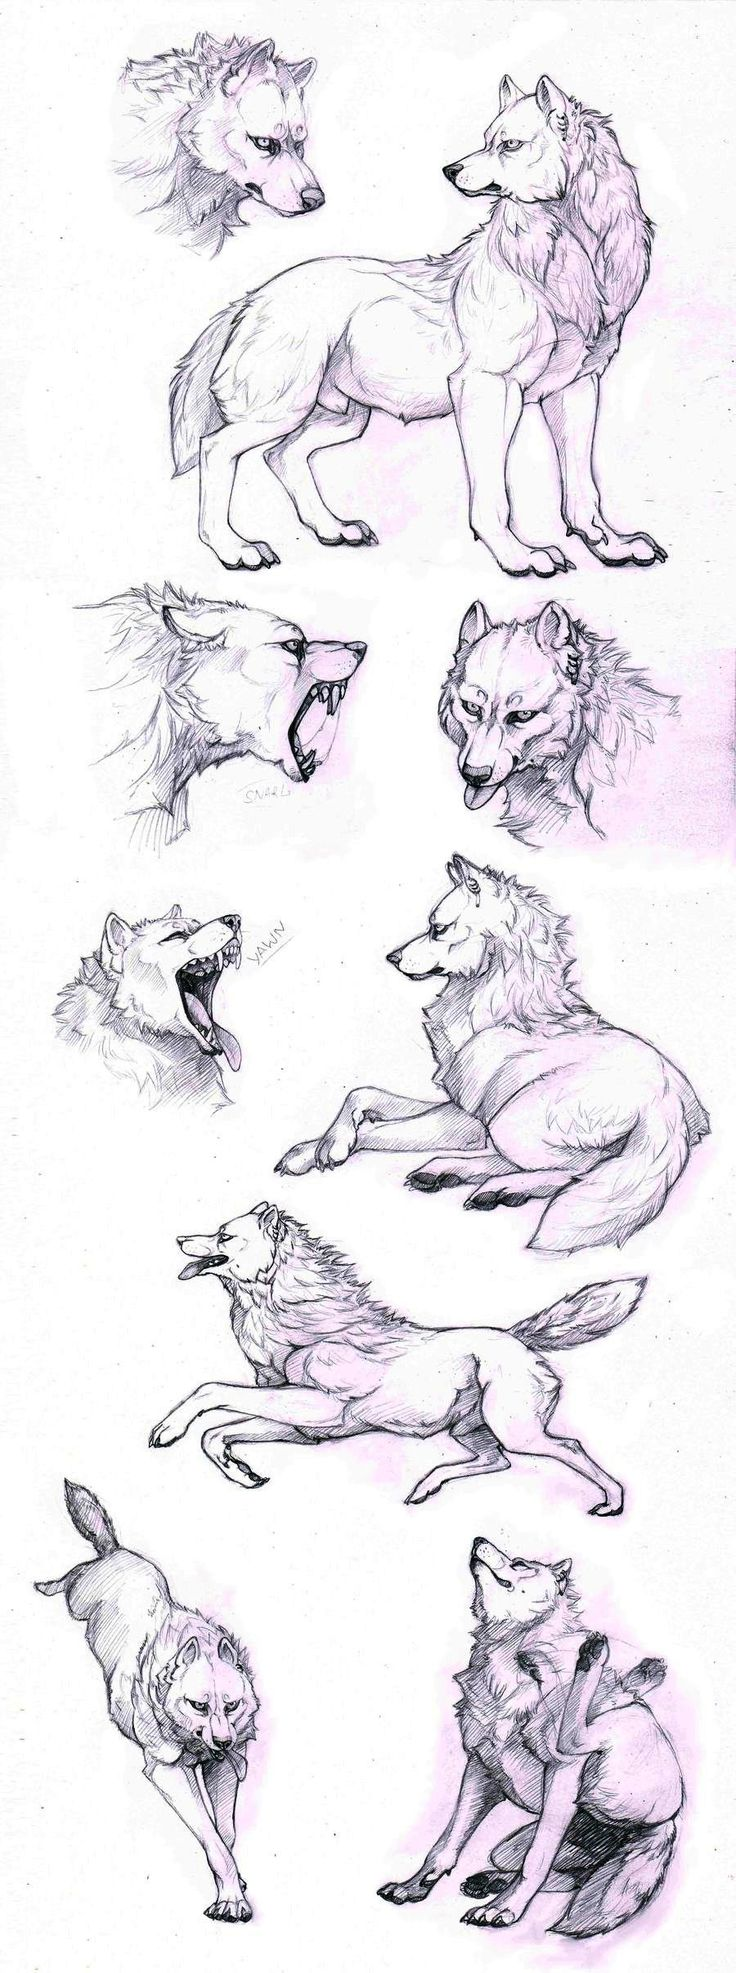 How To Draw A Wolf  Different Poses: Howling, Lying, Standing  Animal